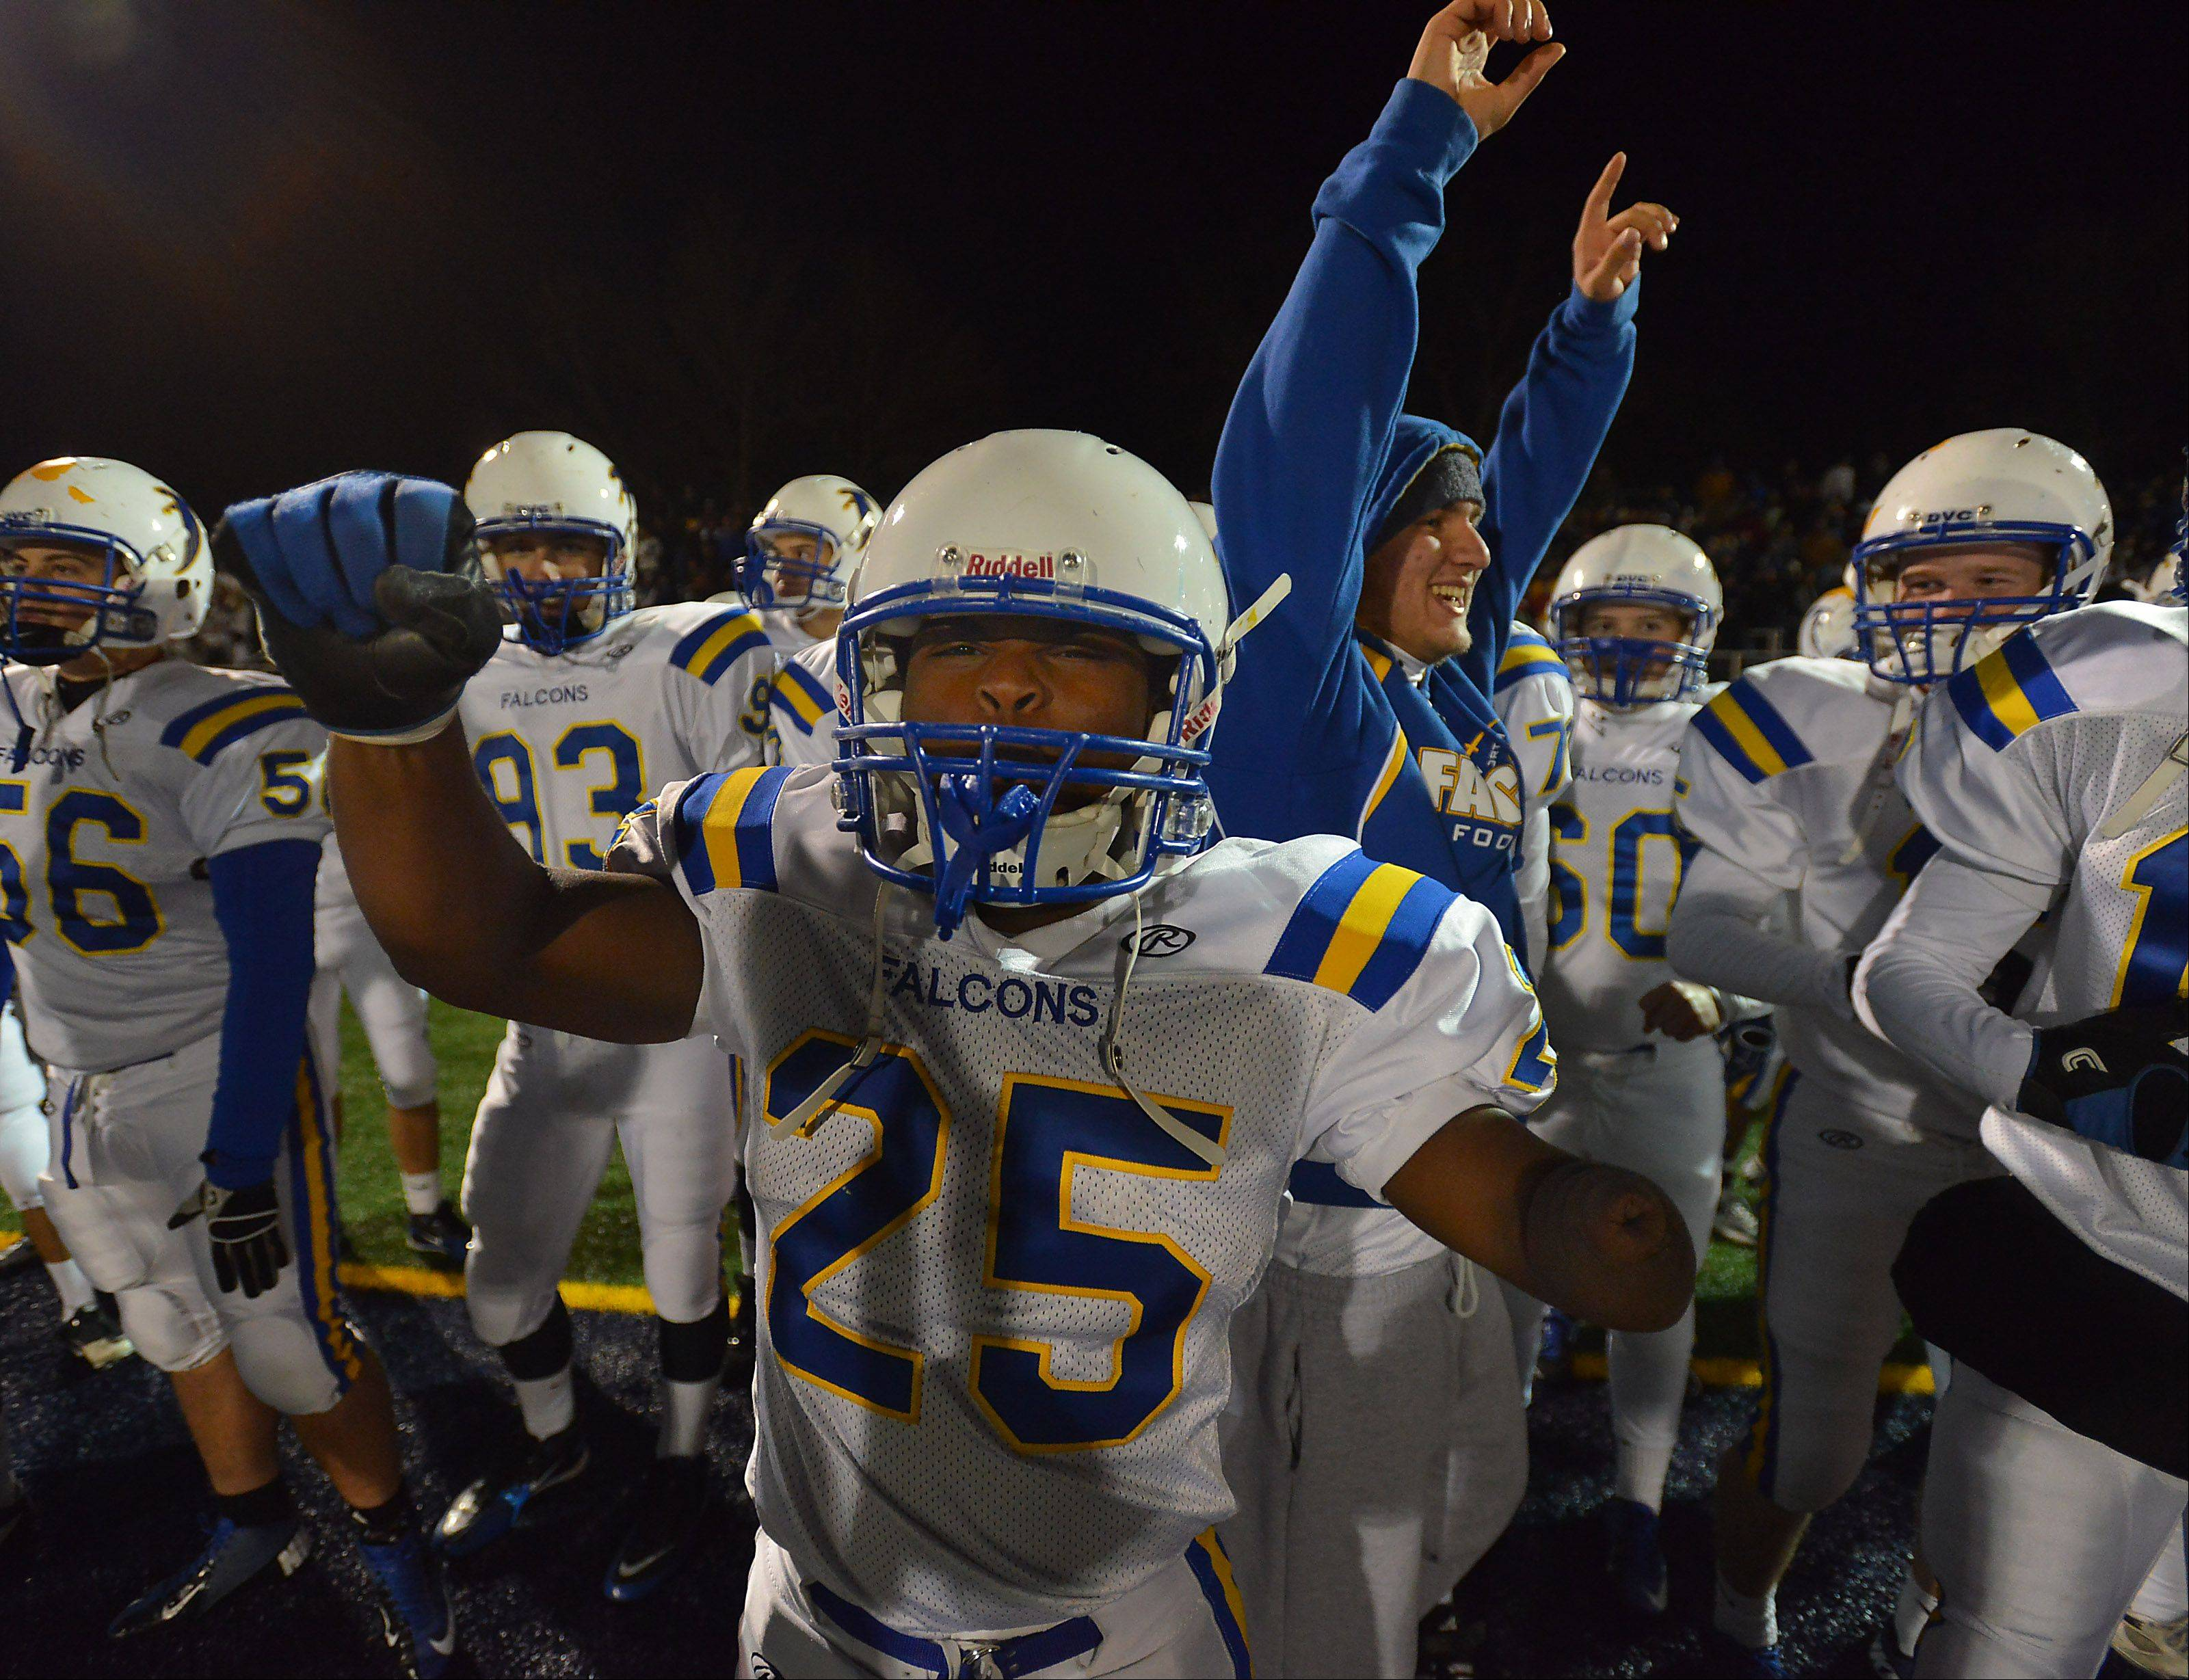 Wheaton North's Lataye Smith celebrates with his teammates in the four quarter with only seconds left as the Falcons top Prospect in the second round of the Class 7A playoffs Friday night in Mt. Prospect.